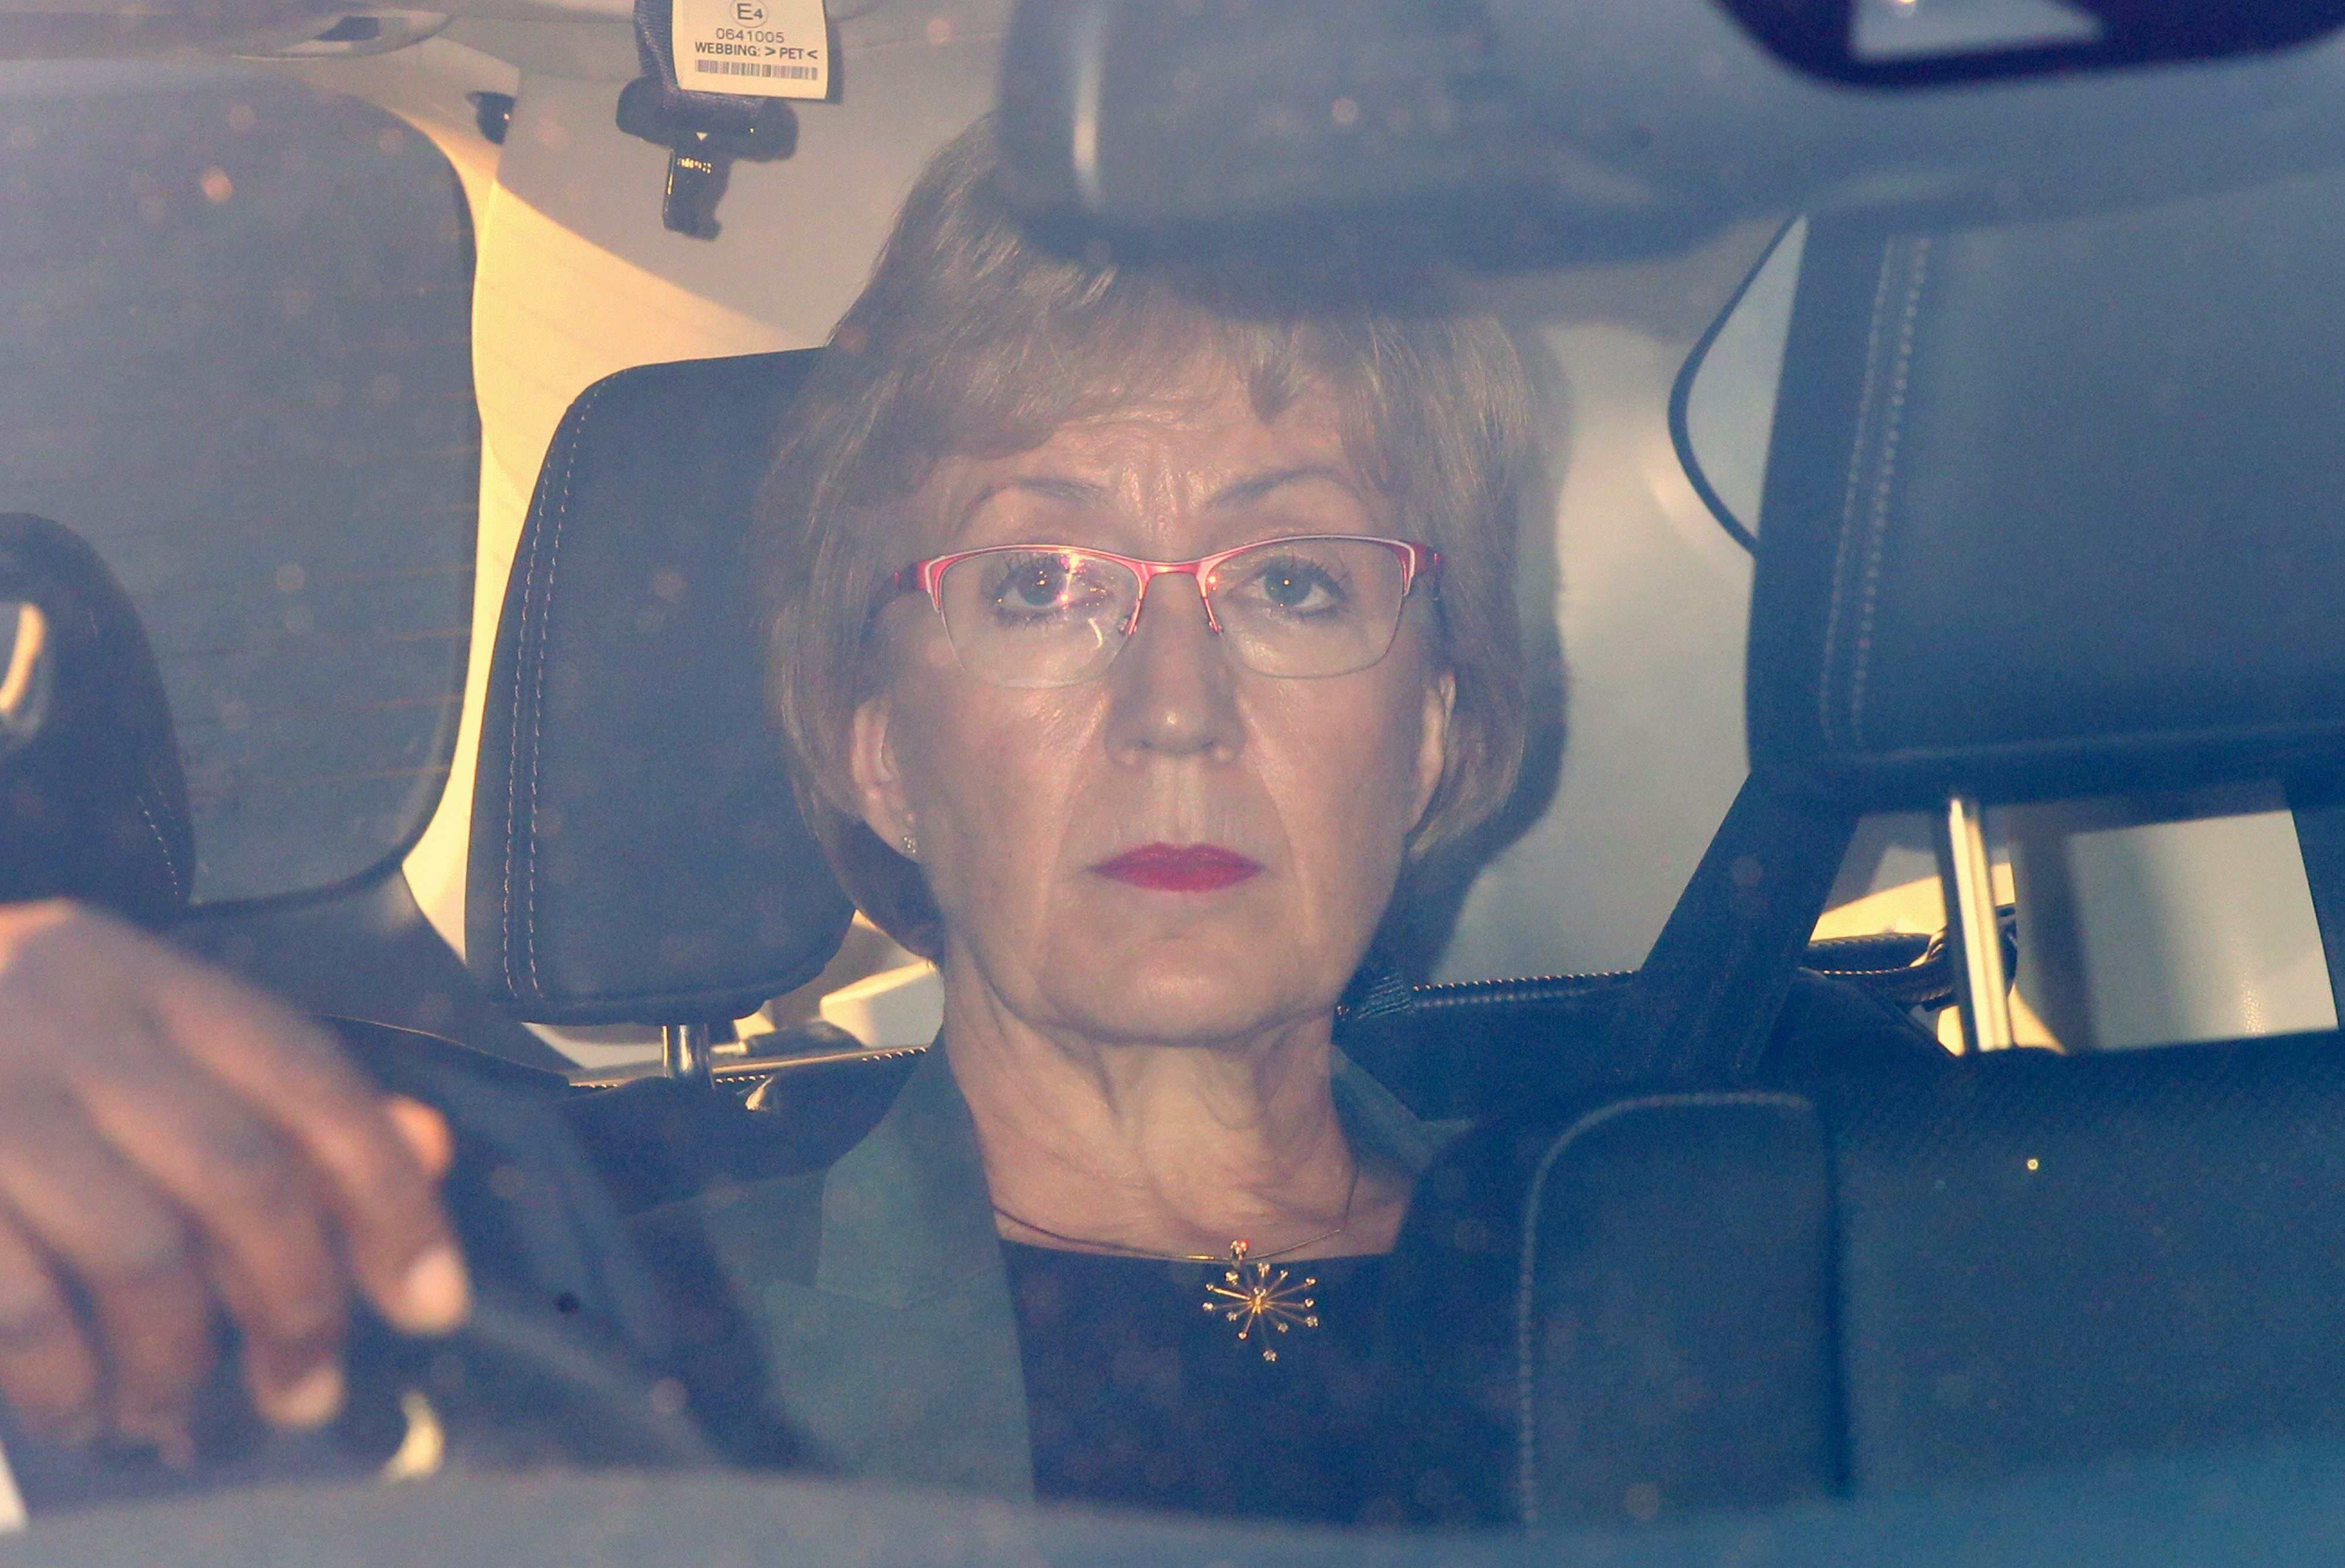 Leader of the House of Commons Andrea Leadsom leaves the Houses of Parliament after resigning.